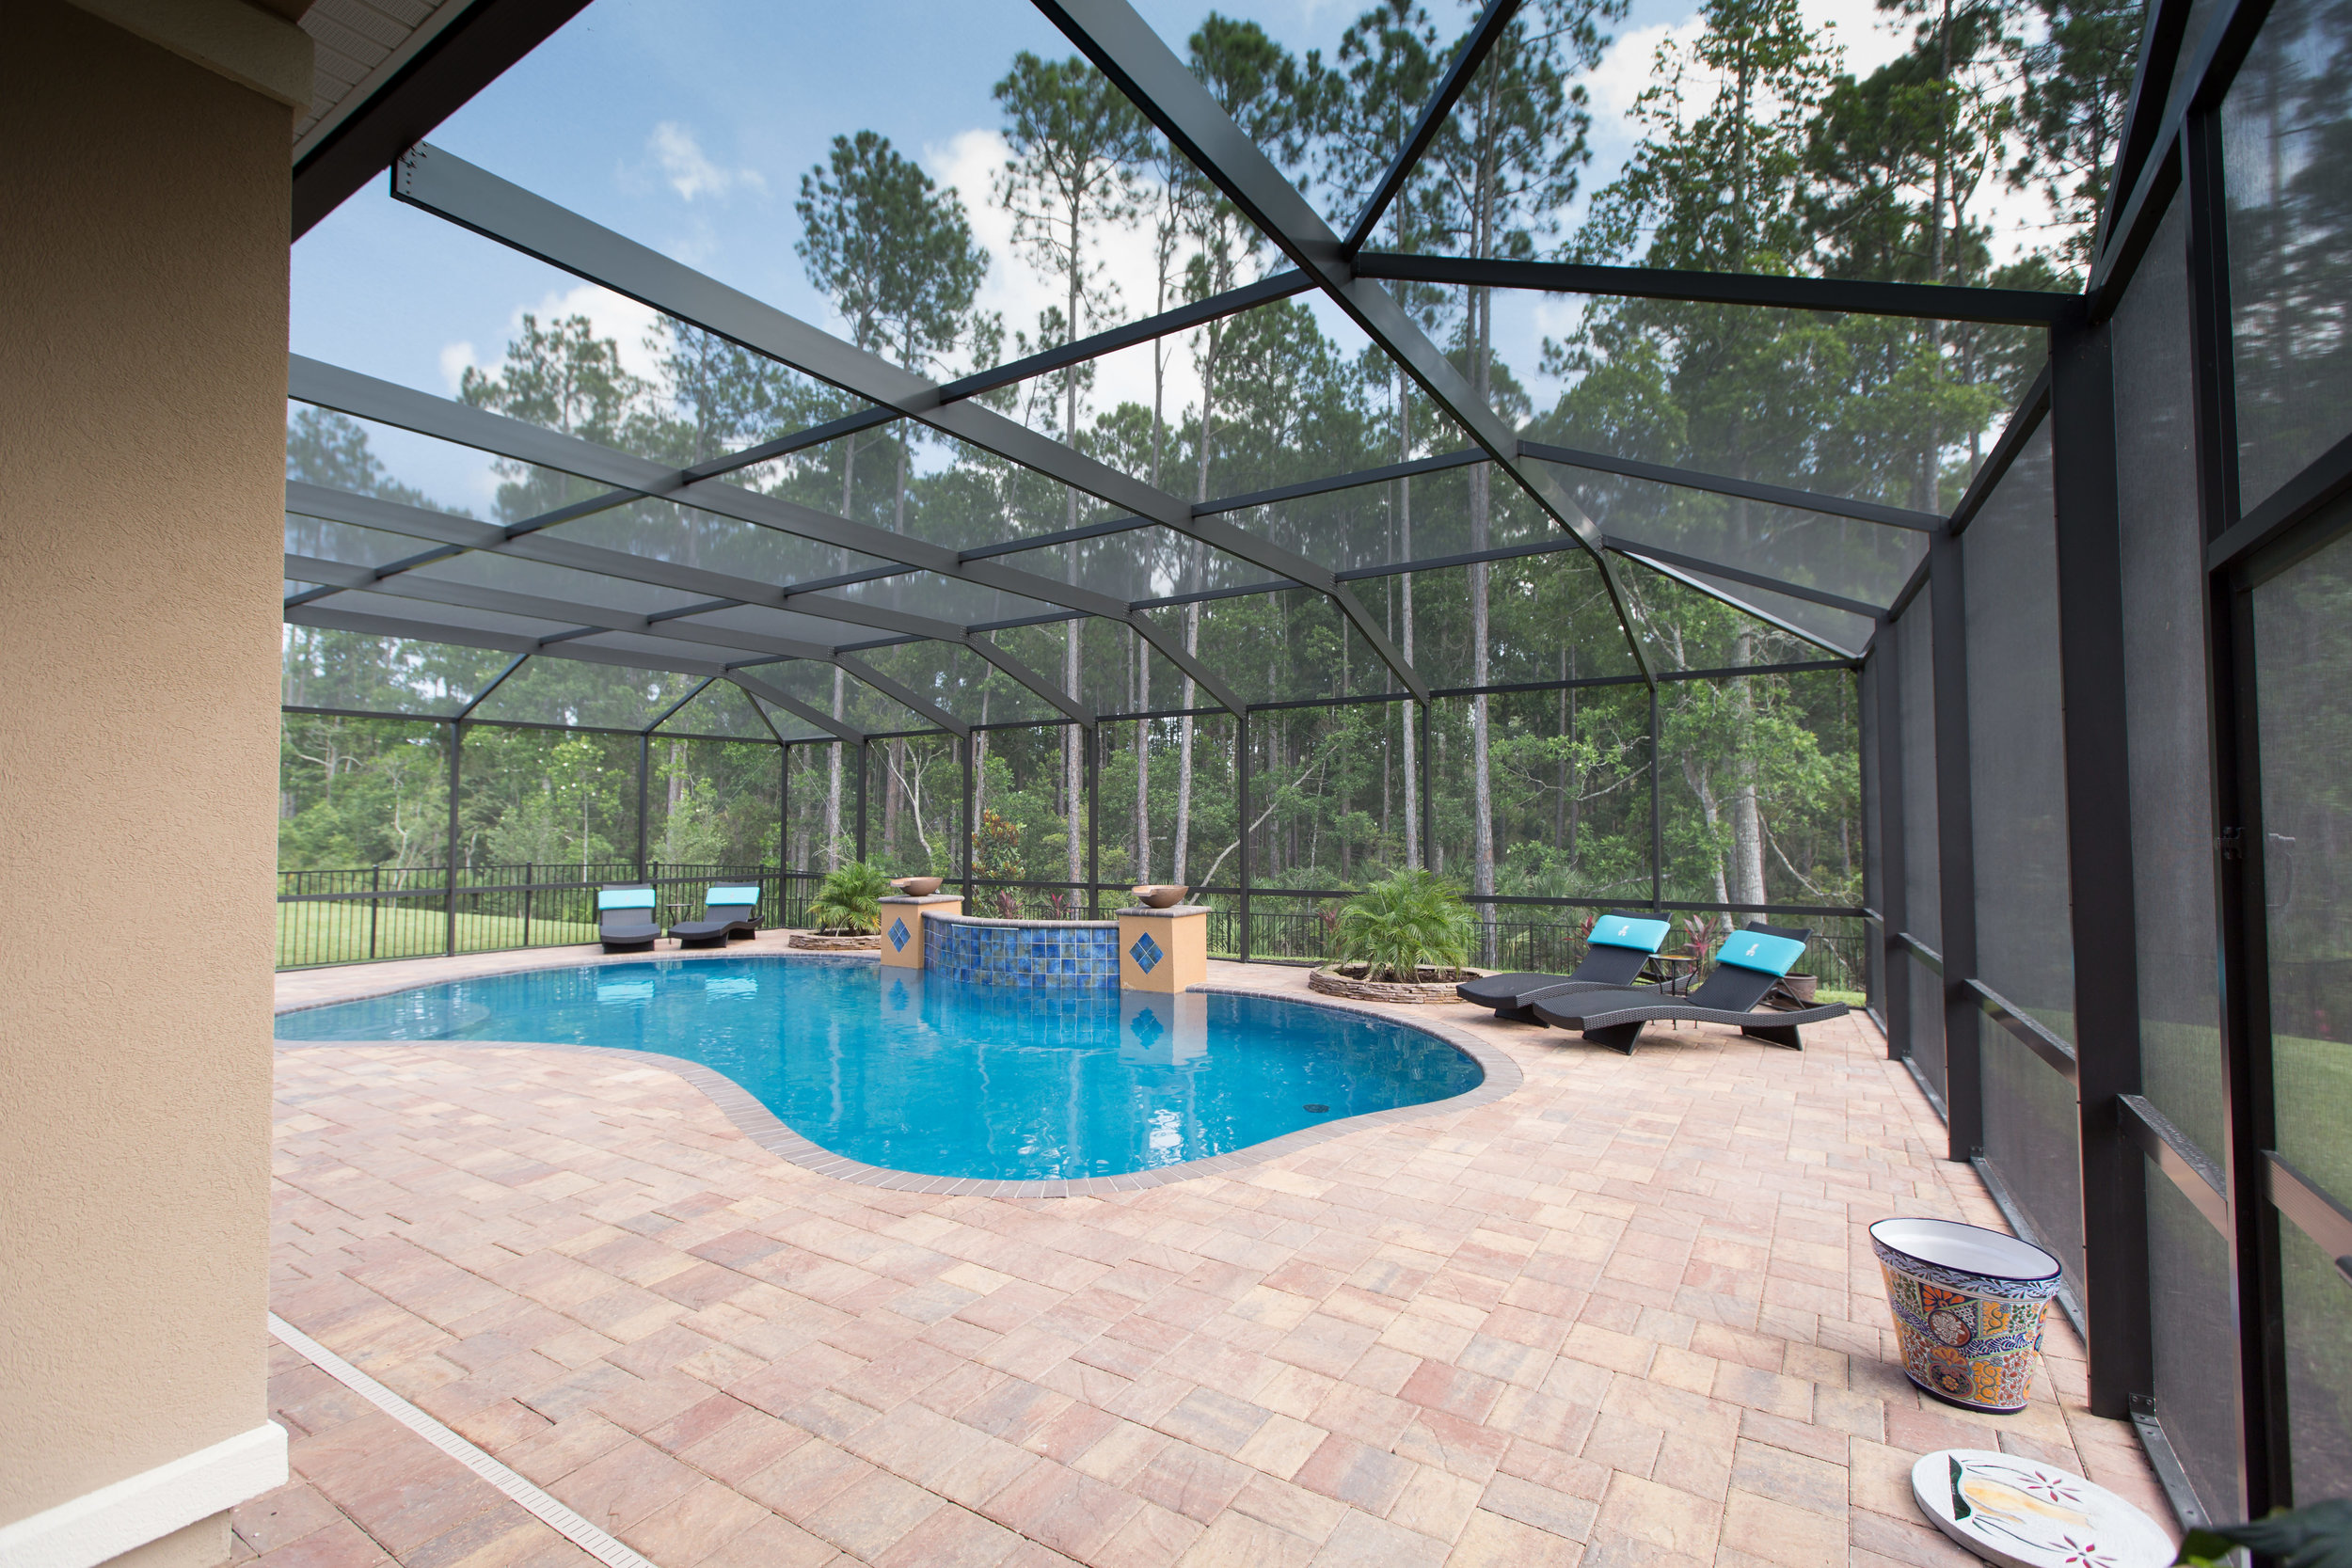 Fences & Screen Enclosures   Whether you want a little protection or a lot, our design team has you covered. Fences and screen enclosures add safety and protection for your backyard oasis.